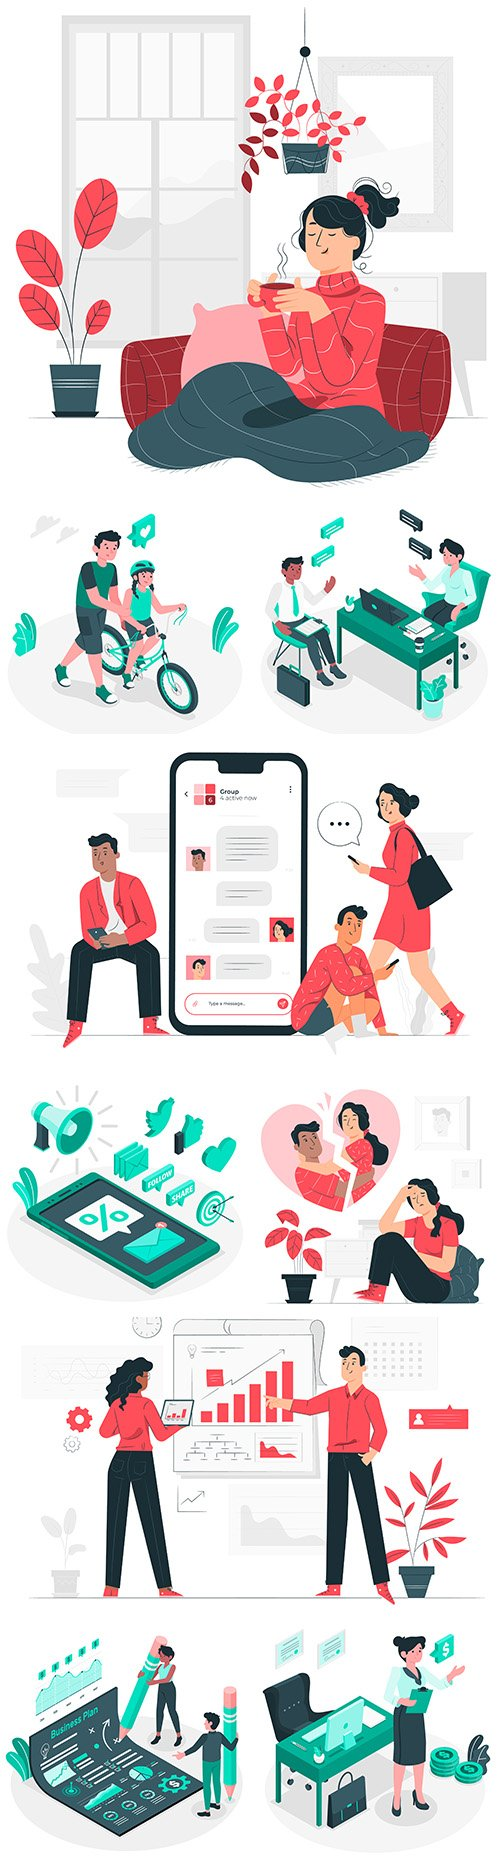 People and business different concept 3d illustration